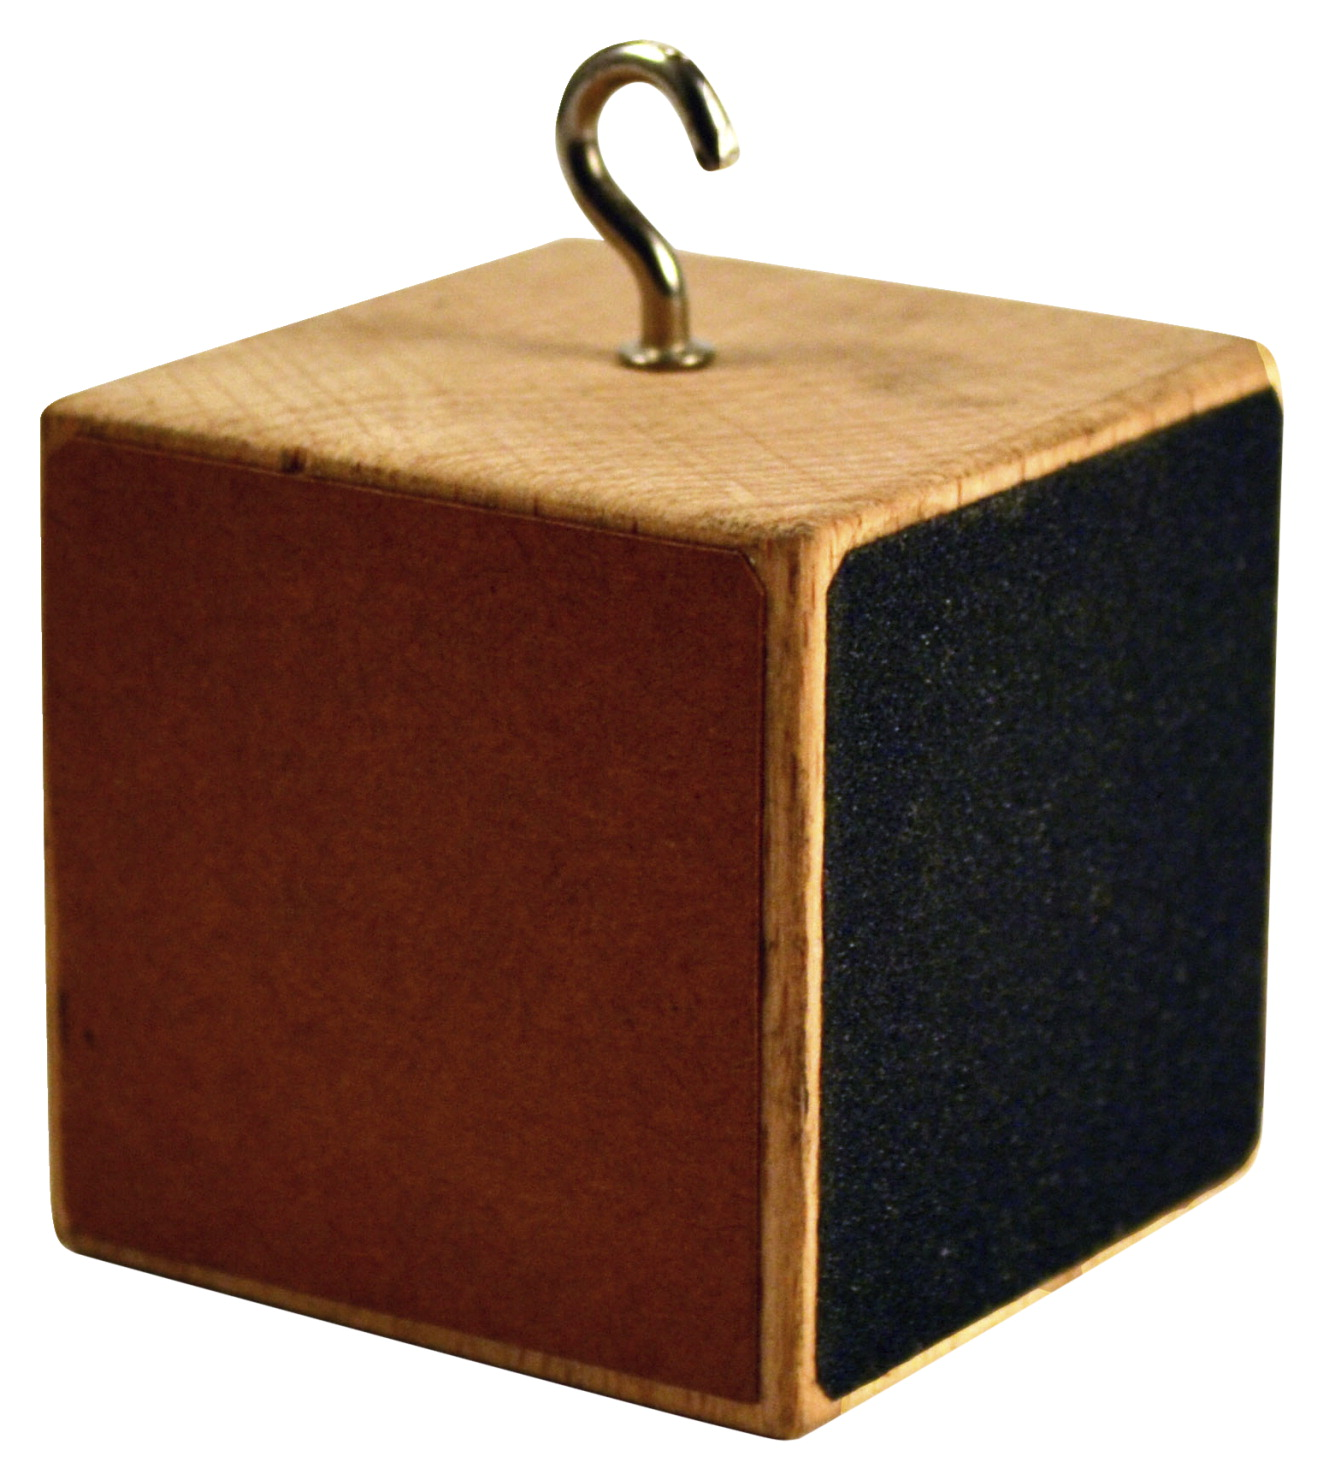 EISCO Friction Cube with 4 Unique Surfaces and a Hook